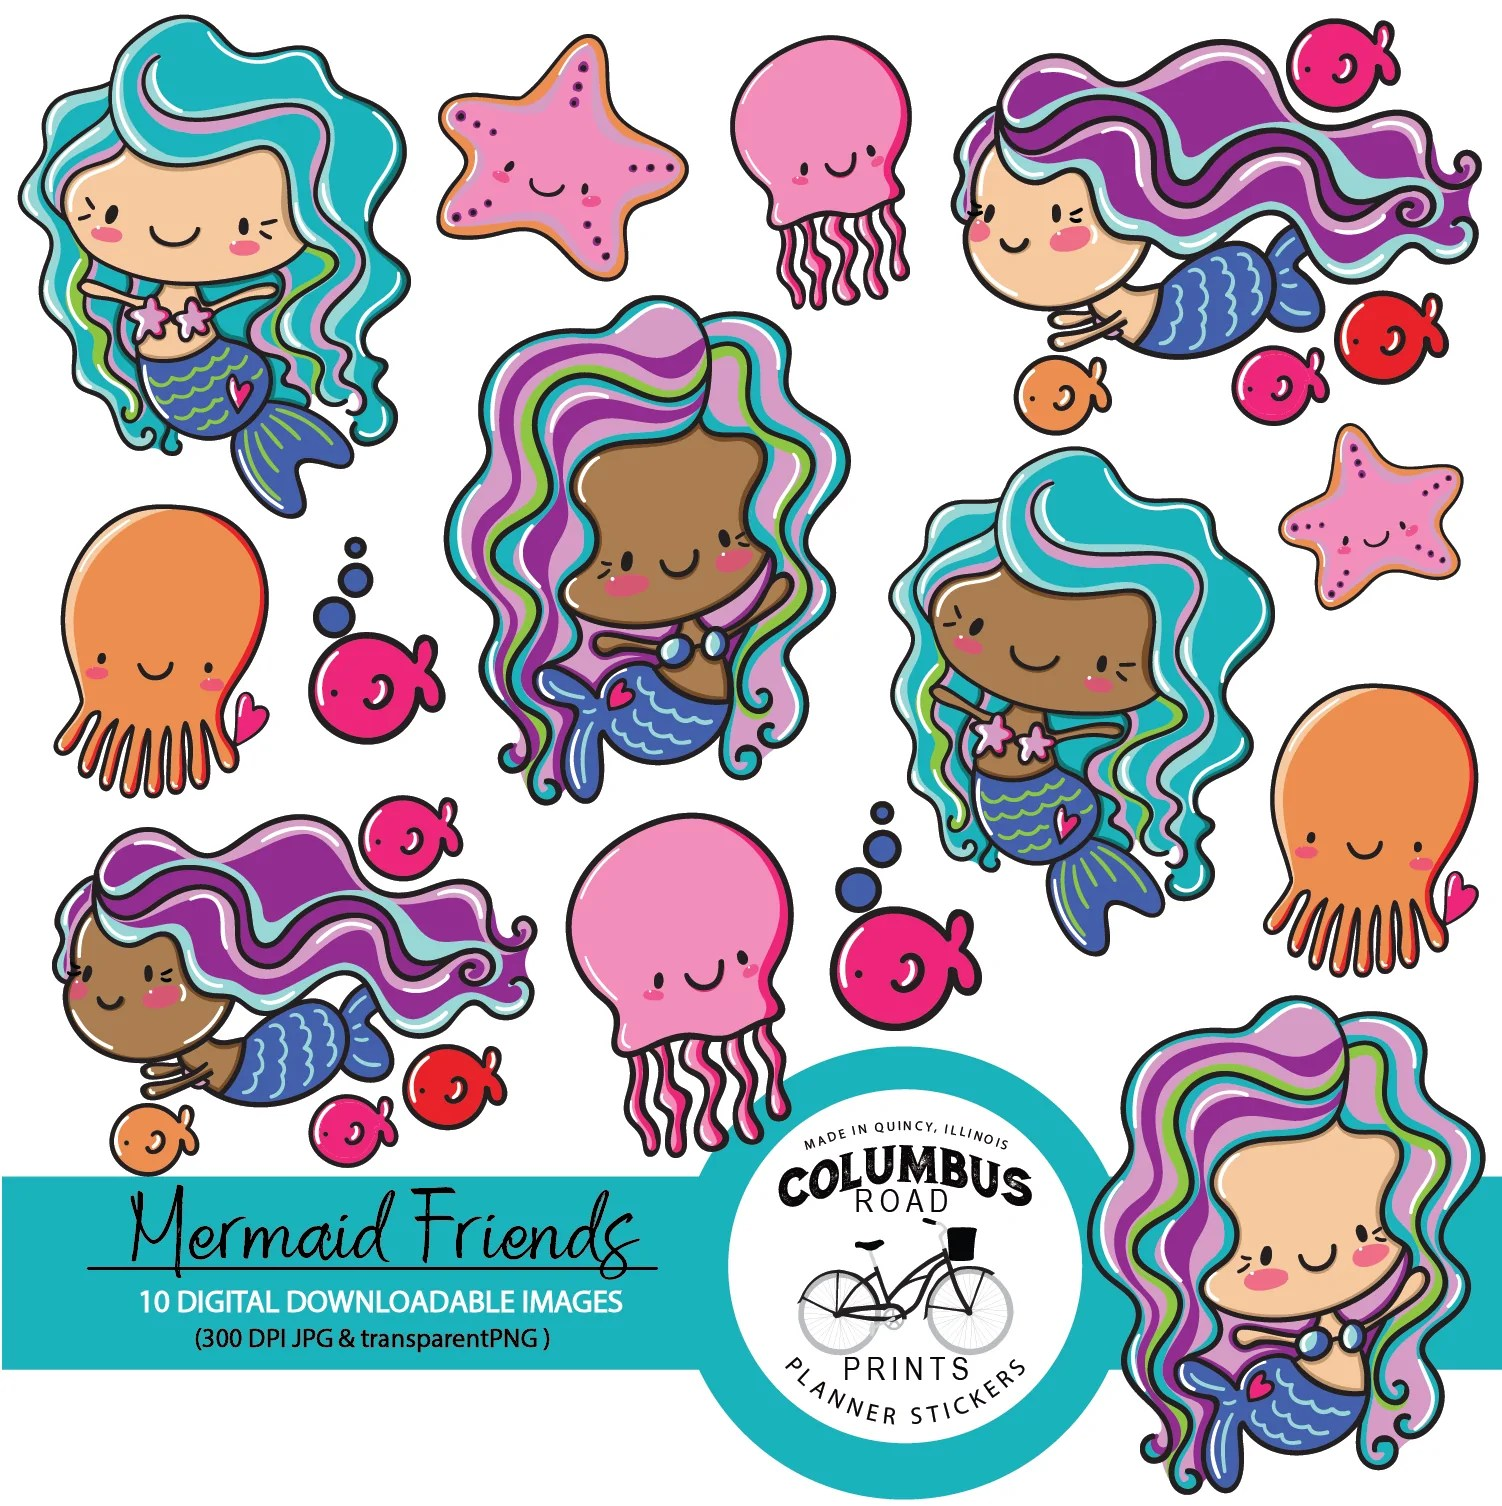 small resolution of digital clipart mermaid friends mermaid digital downloadable clipart use for craft scrapbooking and sticker projects